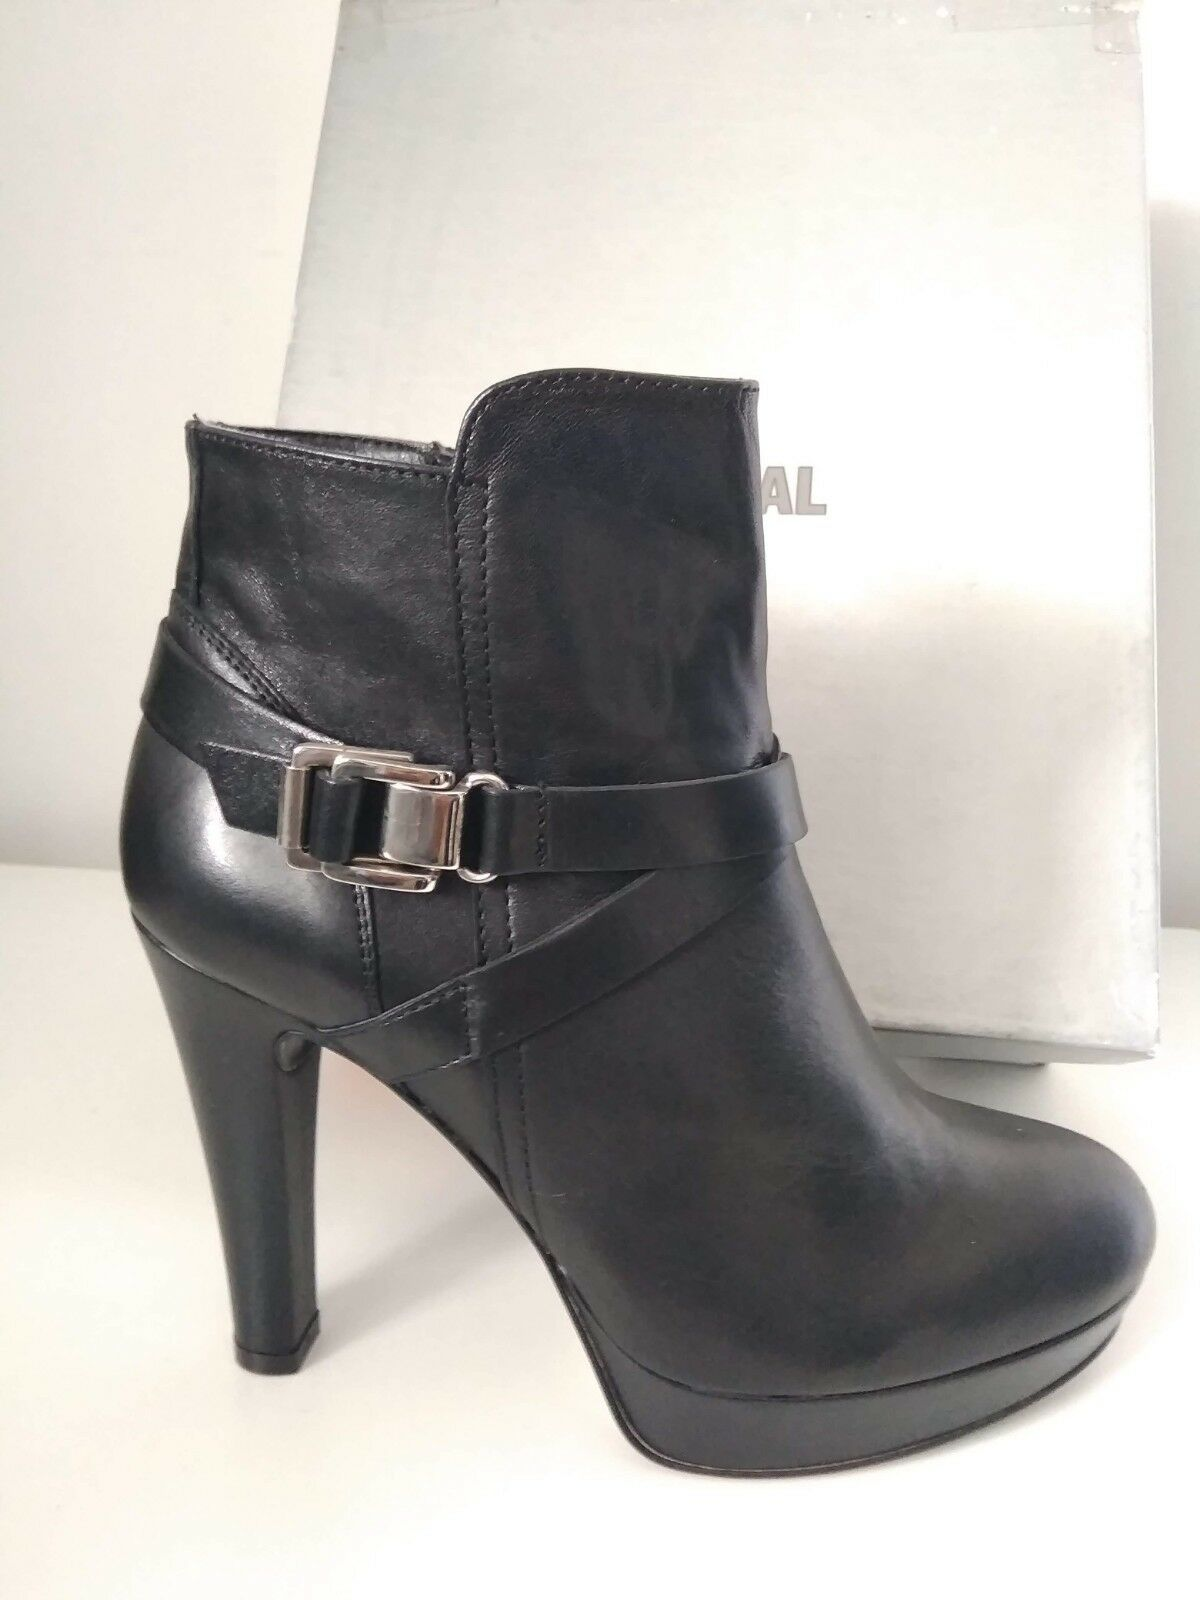 FORUomoTINI  STIVALETTO IN PELLE NERO N. N. NERO 38 TACCO H.11 CM  (GLOBAL MADE IN ITALY) 9a9c3f